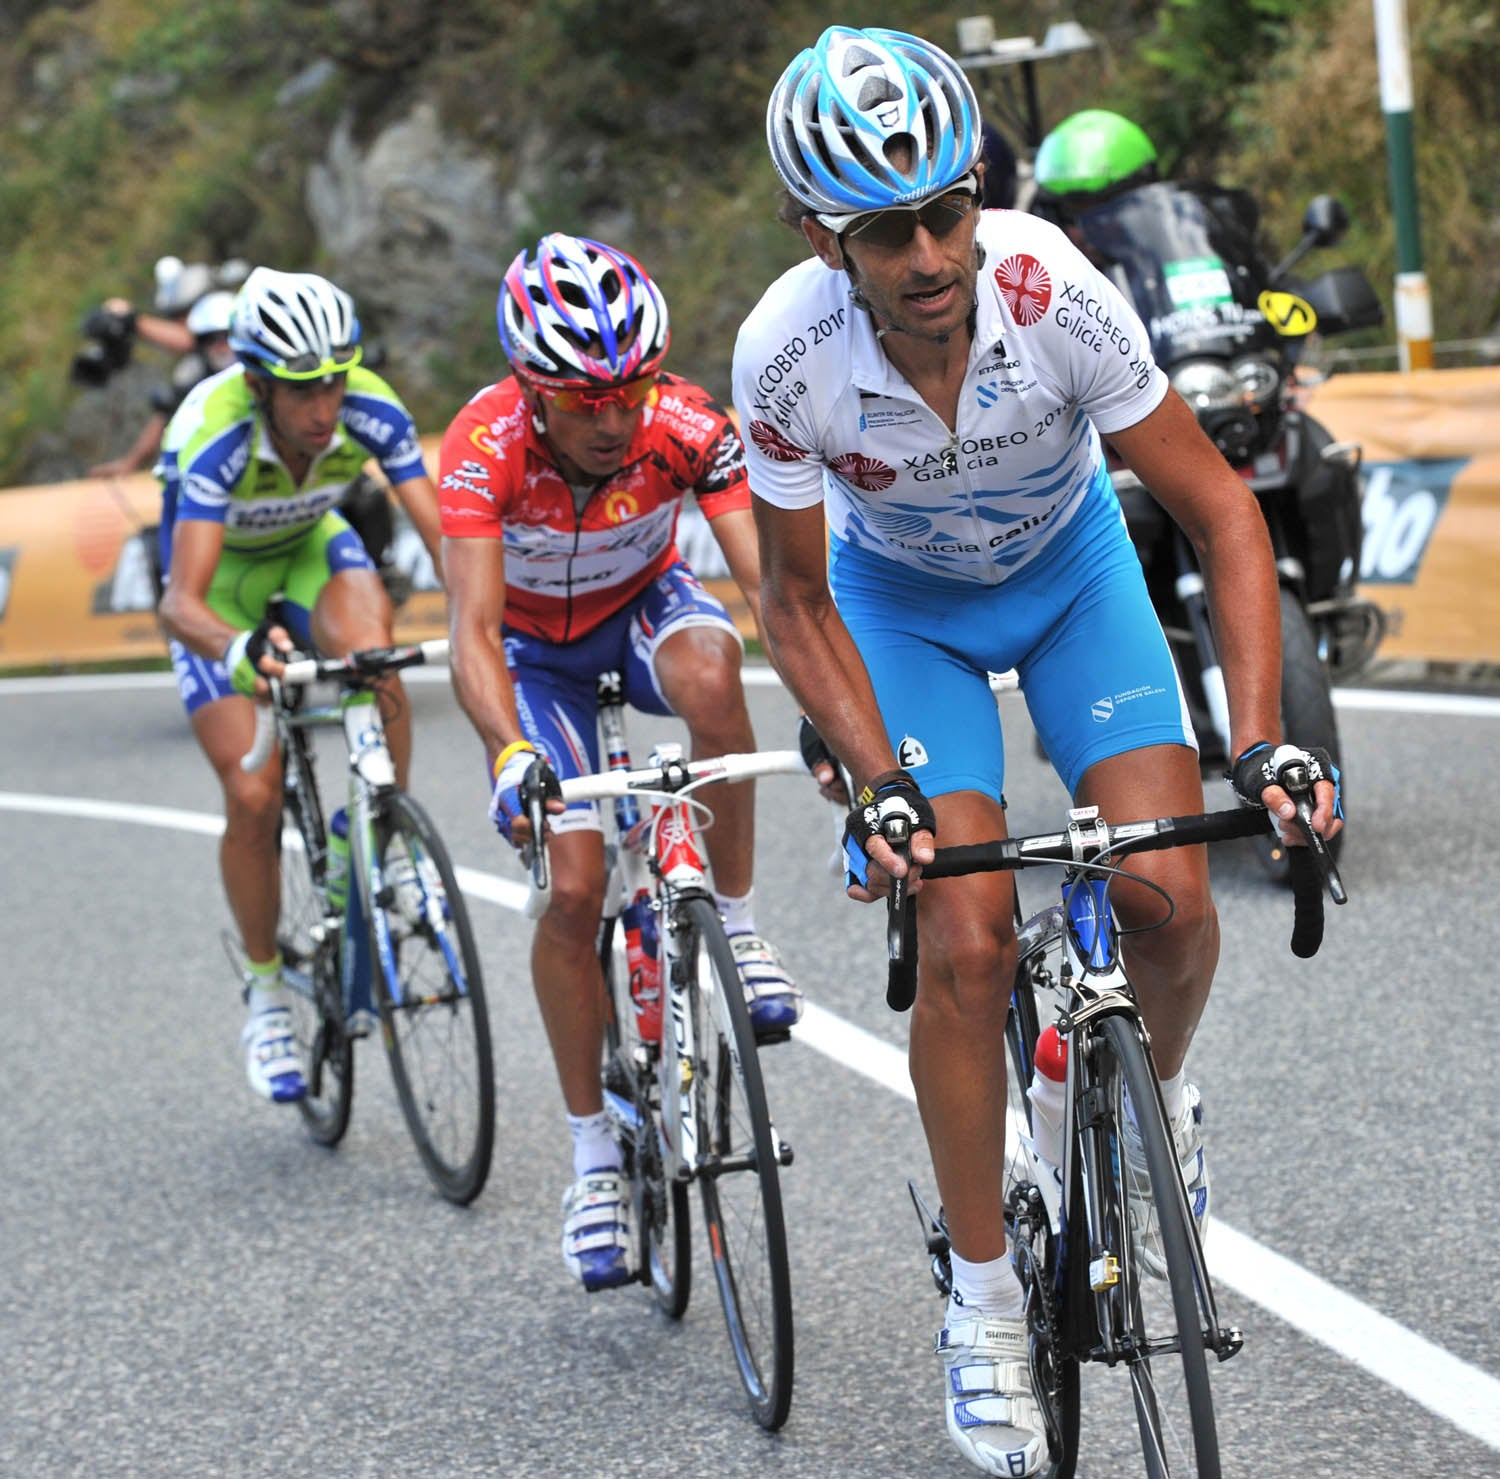 2010 Vuelta a Espana, stage 11: Mosquera's attack reduced the field to three ... but Anton and others fought back.